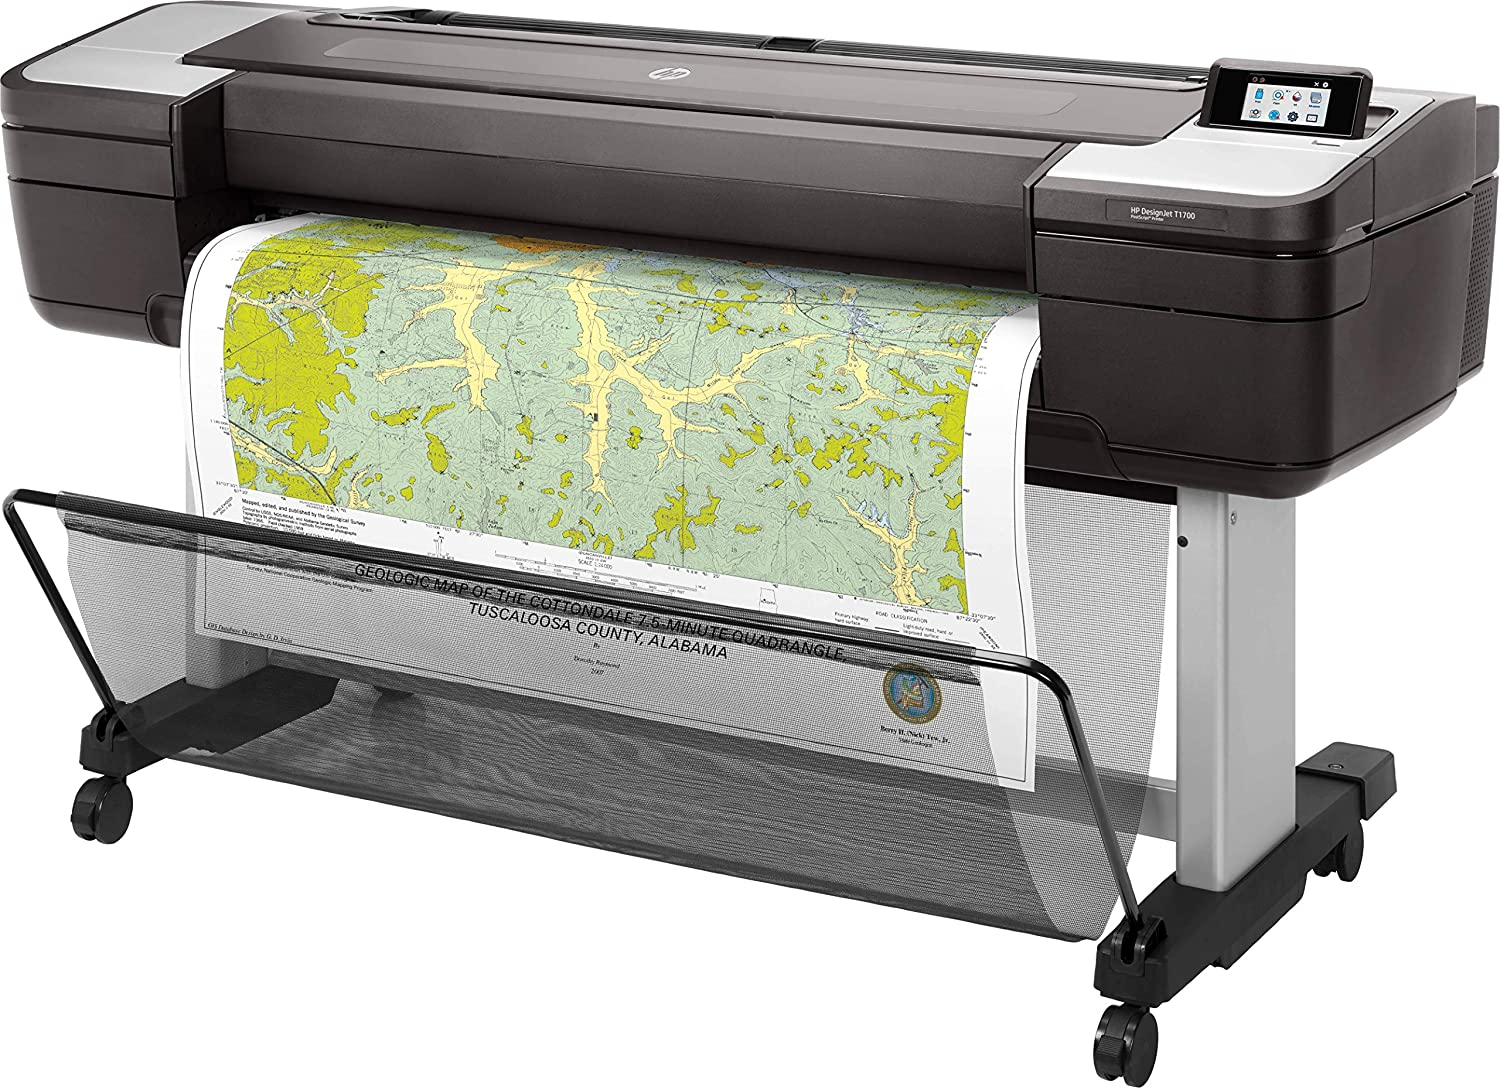 HP Designjet T1700 44-in PostScript Colour Thermal inkjet 2400 x 1200DPI 1118 x 1676 large format printer: Hp: Amazon.es: Informática